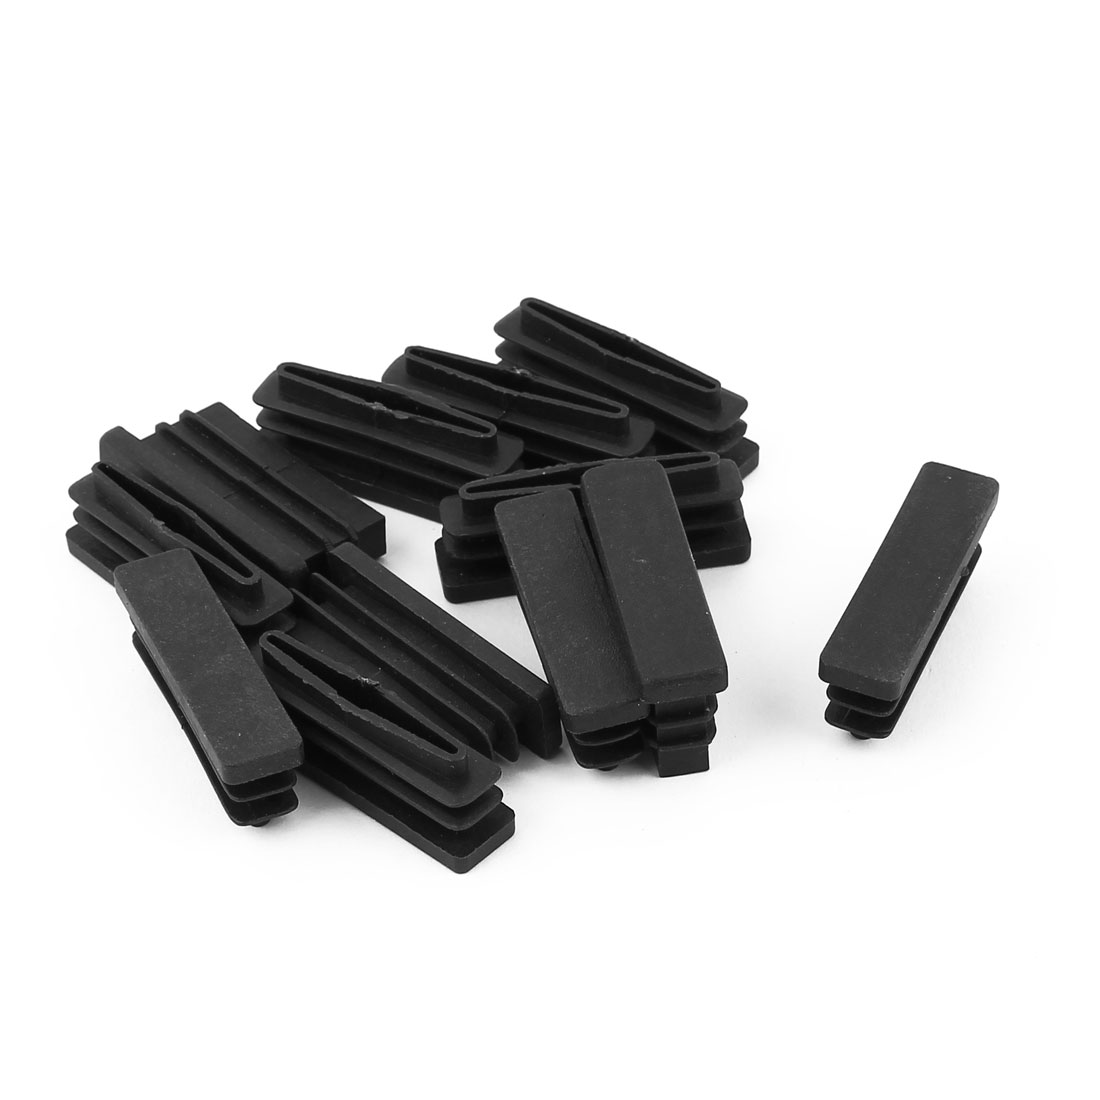 12 Pcs Black Plastic Rectangle Blanking End Caps Tubing Tube Inserts 10mm x 40mm